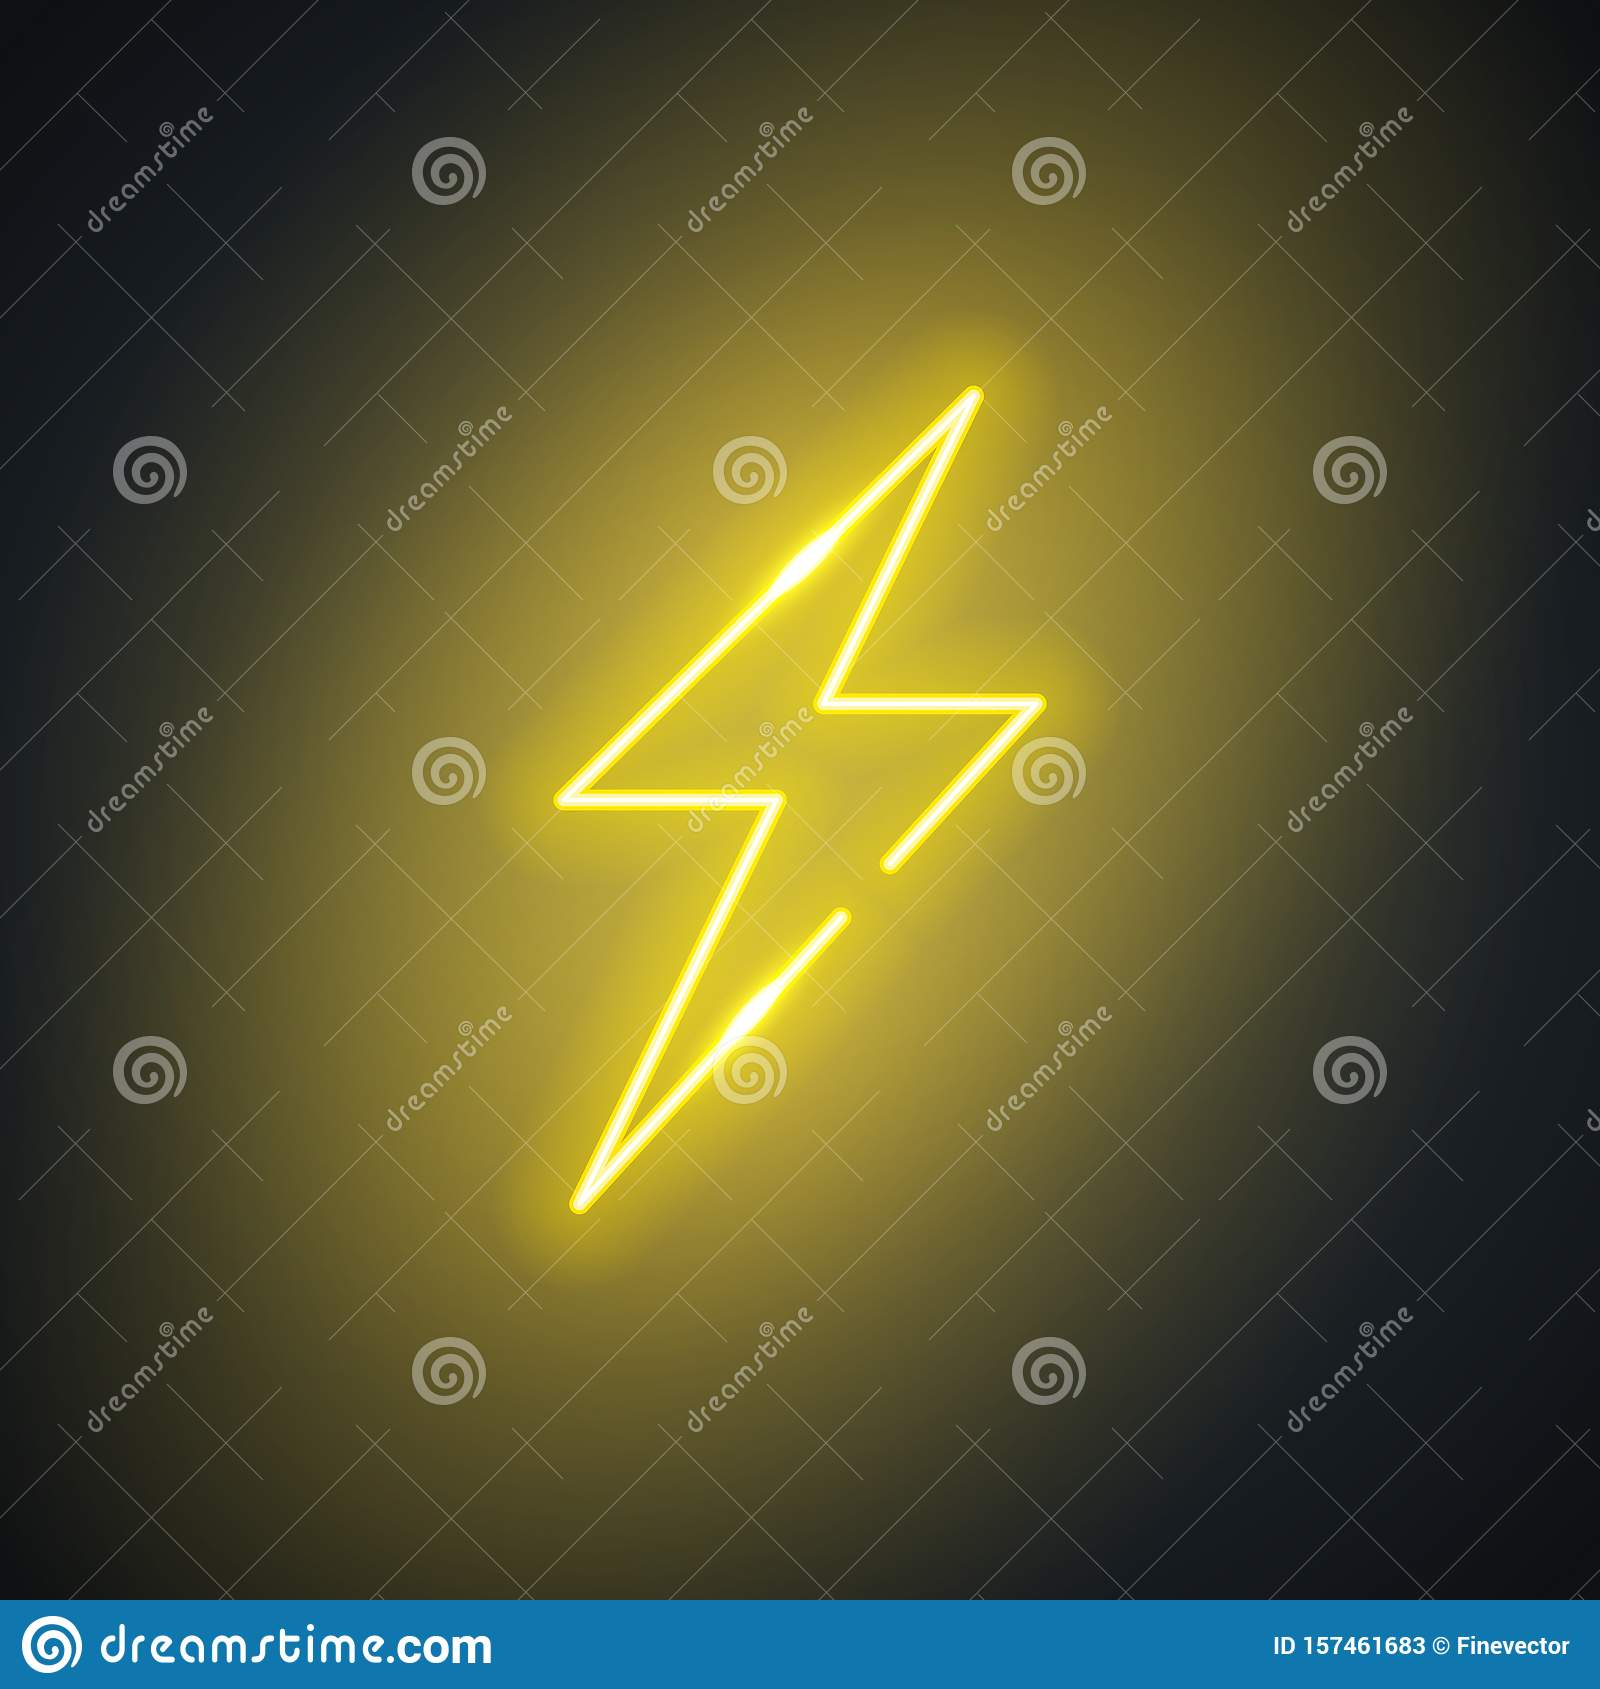 Neon Lightning Glowing Flash Sign On Black Background Colorful And Bright Retro Lightning Bolt Symbol Stock Vector Illustration Of Isolated Energy 157461683